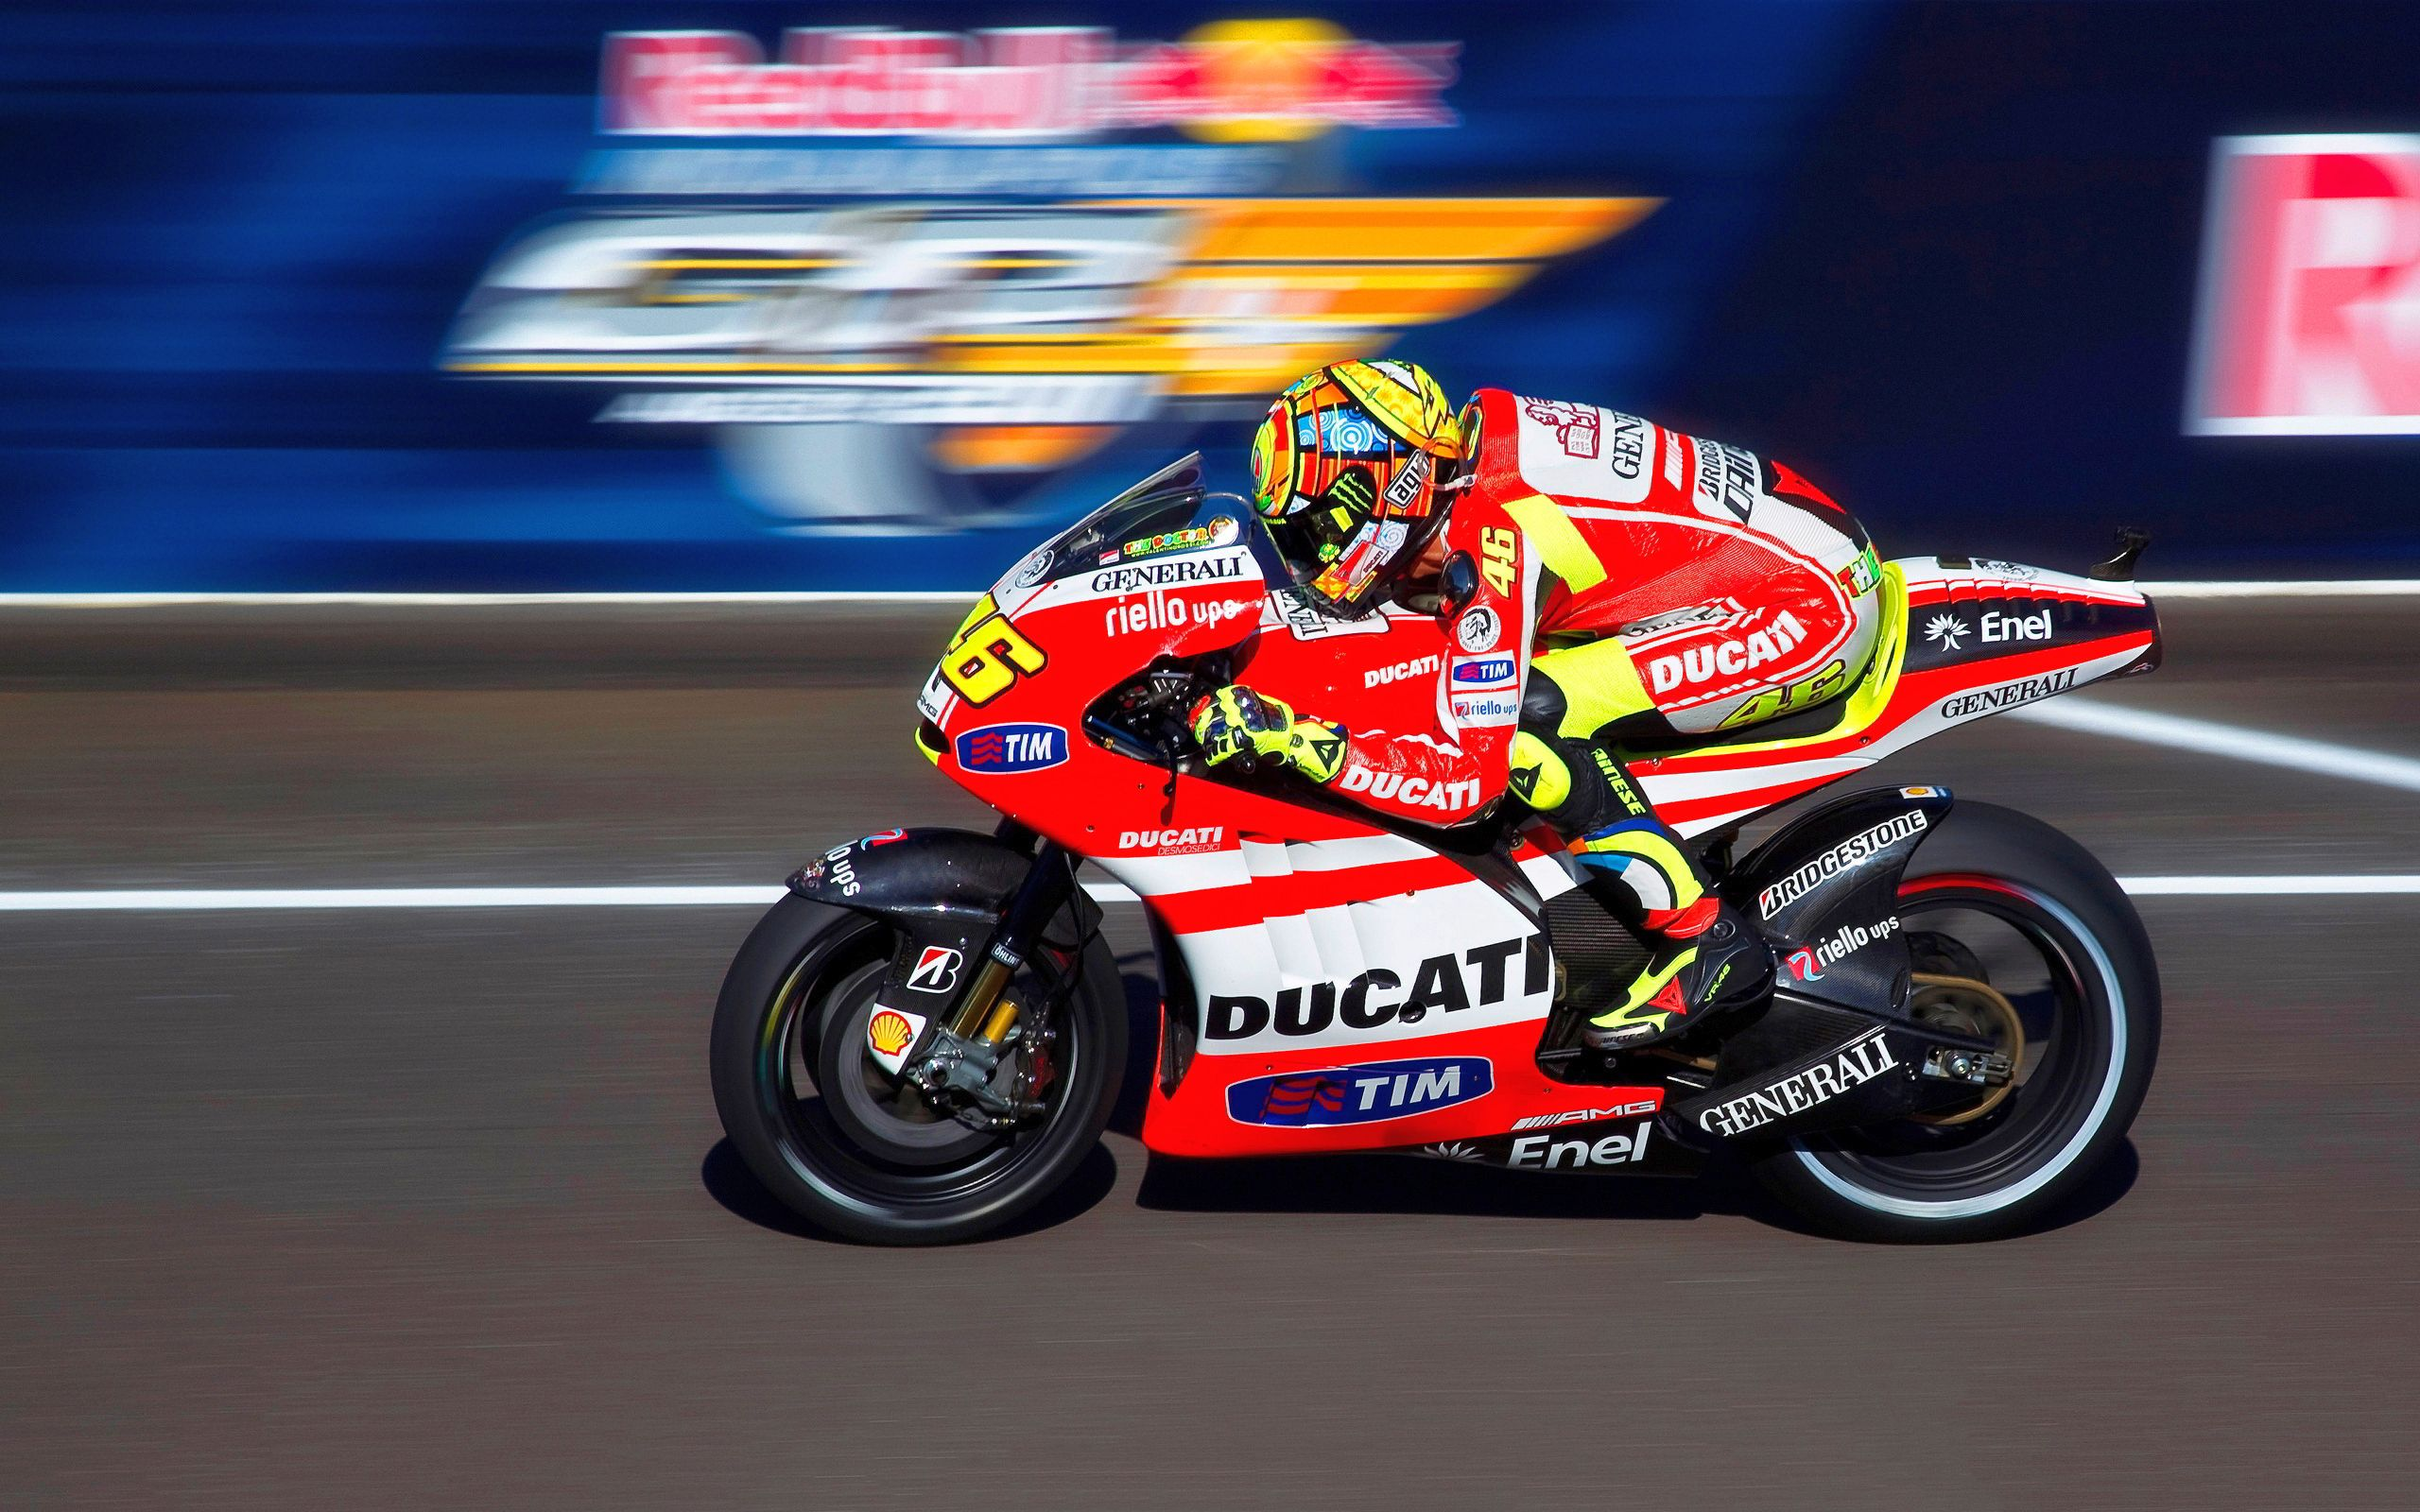 Valentino rossi the doctor wallpaper pictures 5 hd wallpapers valentino rossi the doctor wallpaper pictures 5 hd wallpapers stuff to buy pinterest valentino rossi and rossi motogp voltagebd Choice Image